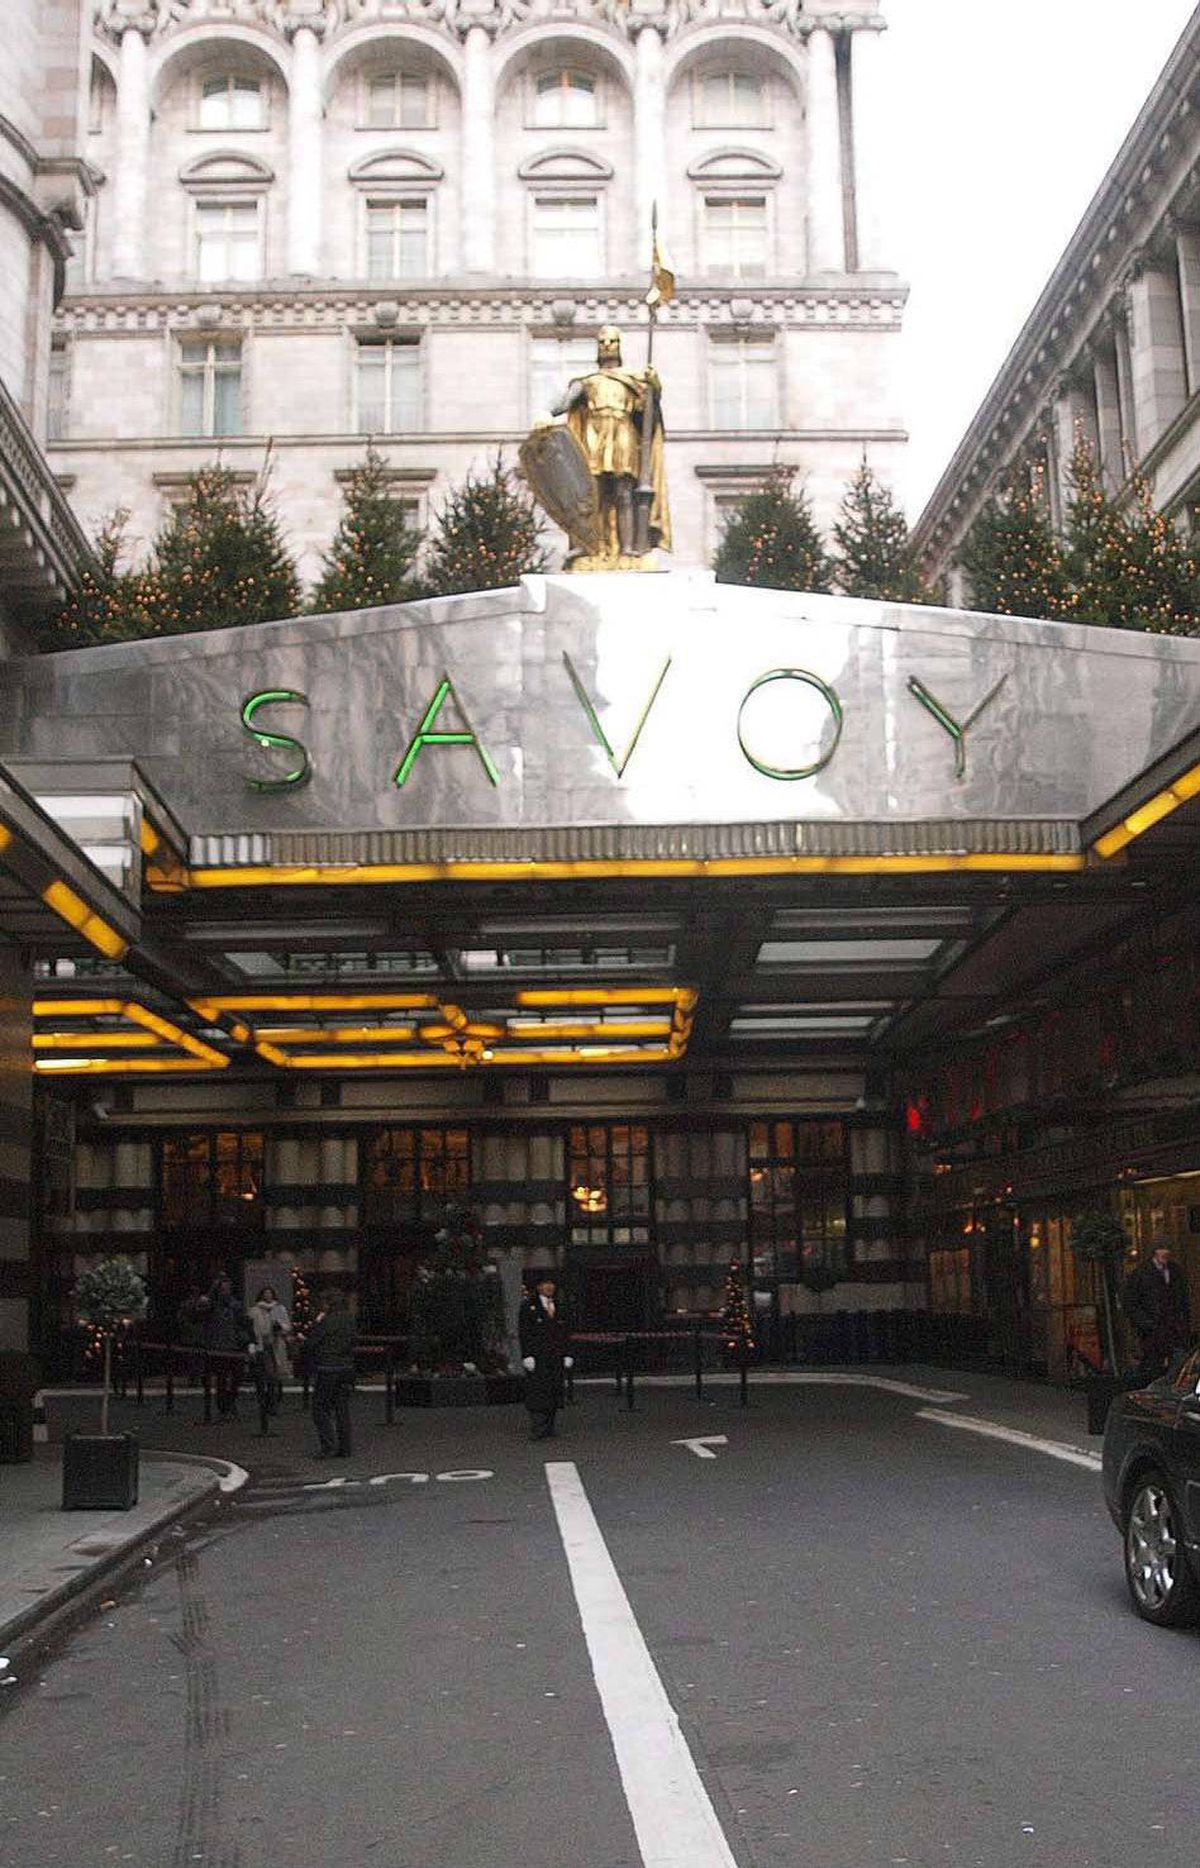 And now another word from our sponsor: When in London, jet-set celebrity Canadian cabinet ministers discreetly* enjoy the many well-deserved luxuries of the Savoy Hotel. The Savoy: Why tell anyone you stayed here? (*Discretion not guaranteed.) And now back to our gallery.